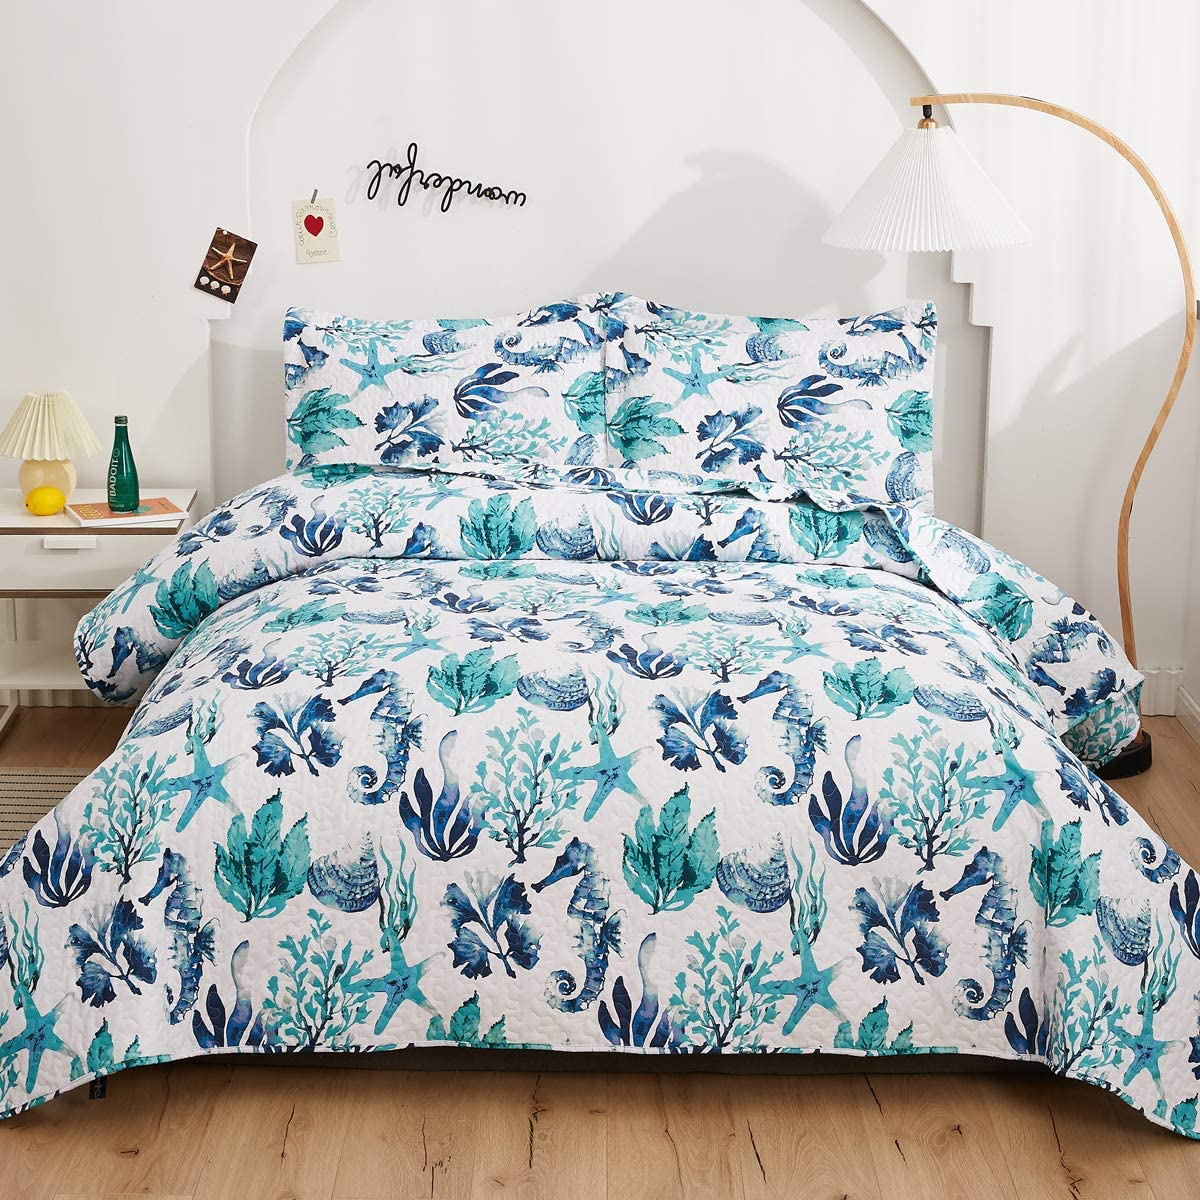 Ocean Bedding King Size,Seashell Conch Quilt Cartoon Bedspread King,Summer Quilt Reversible Coastal Coverlets with Pillow Protectors,Decor Bedrome